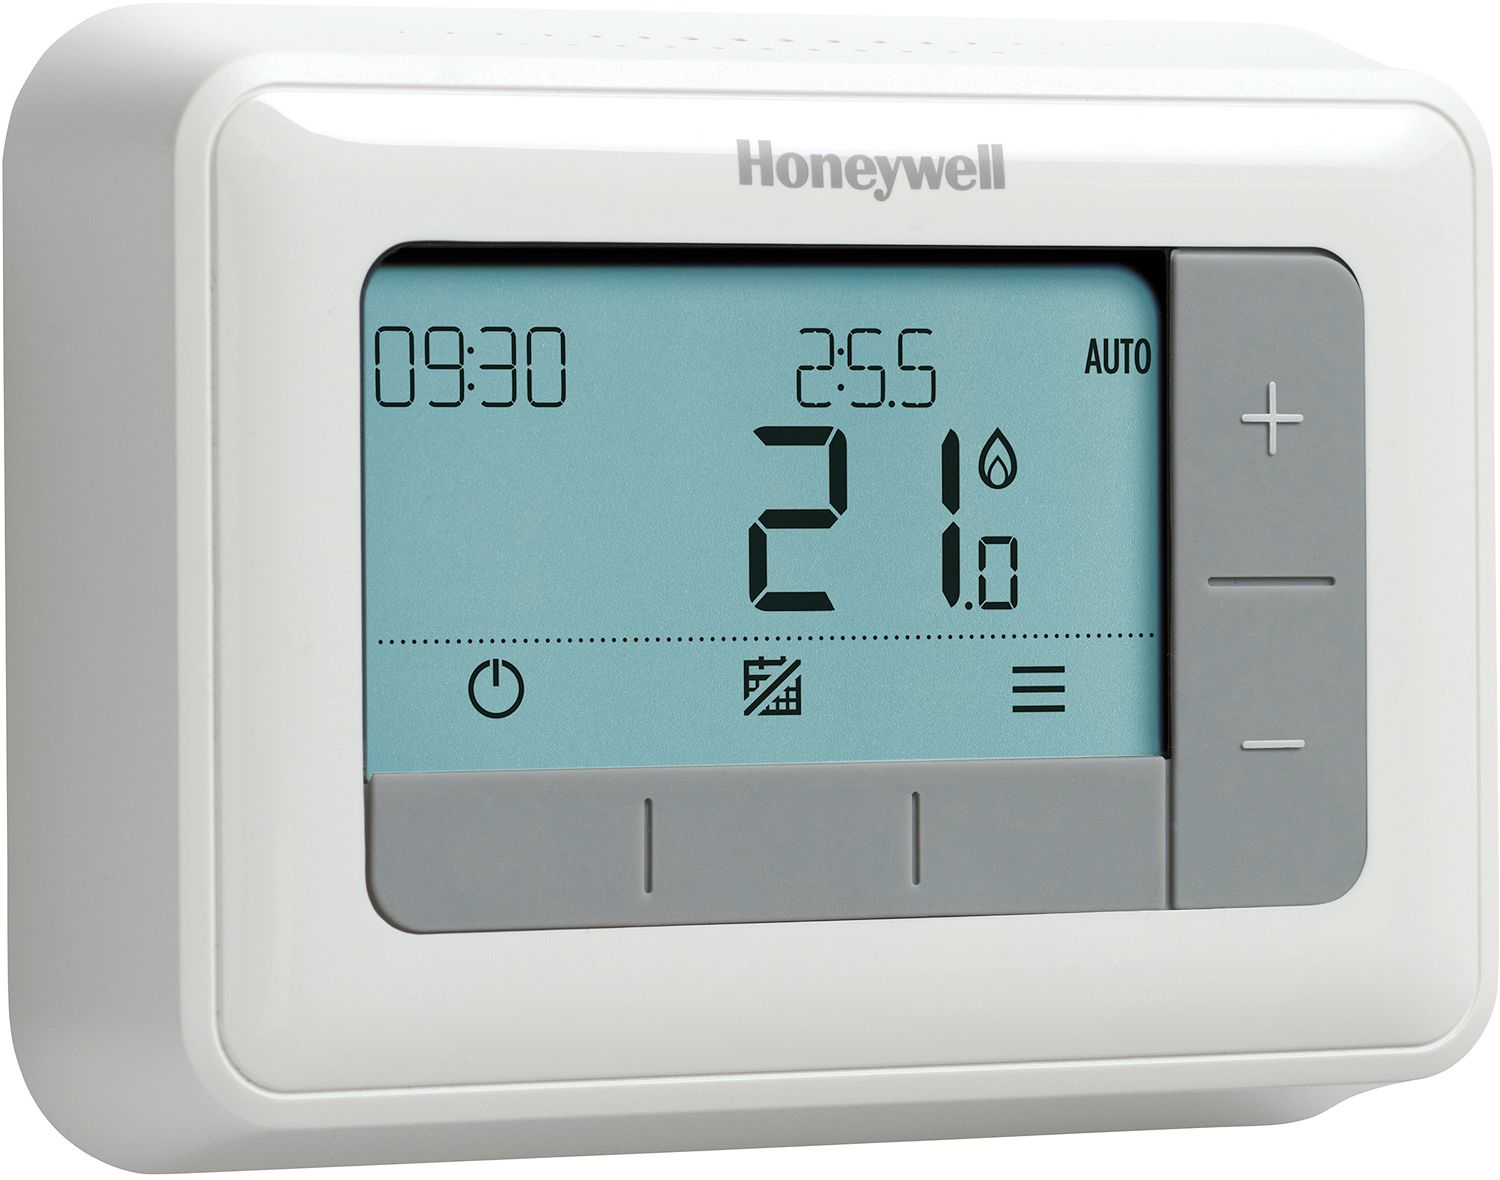 Therm d 39 honeywell herdoma for Th 450 termostato